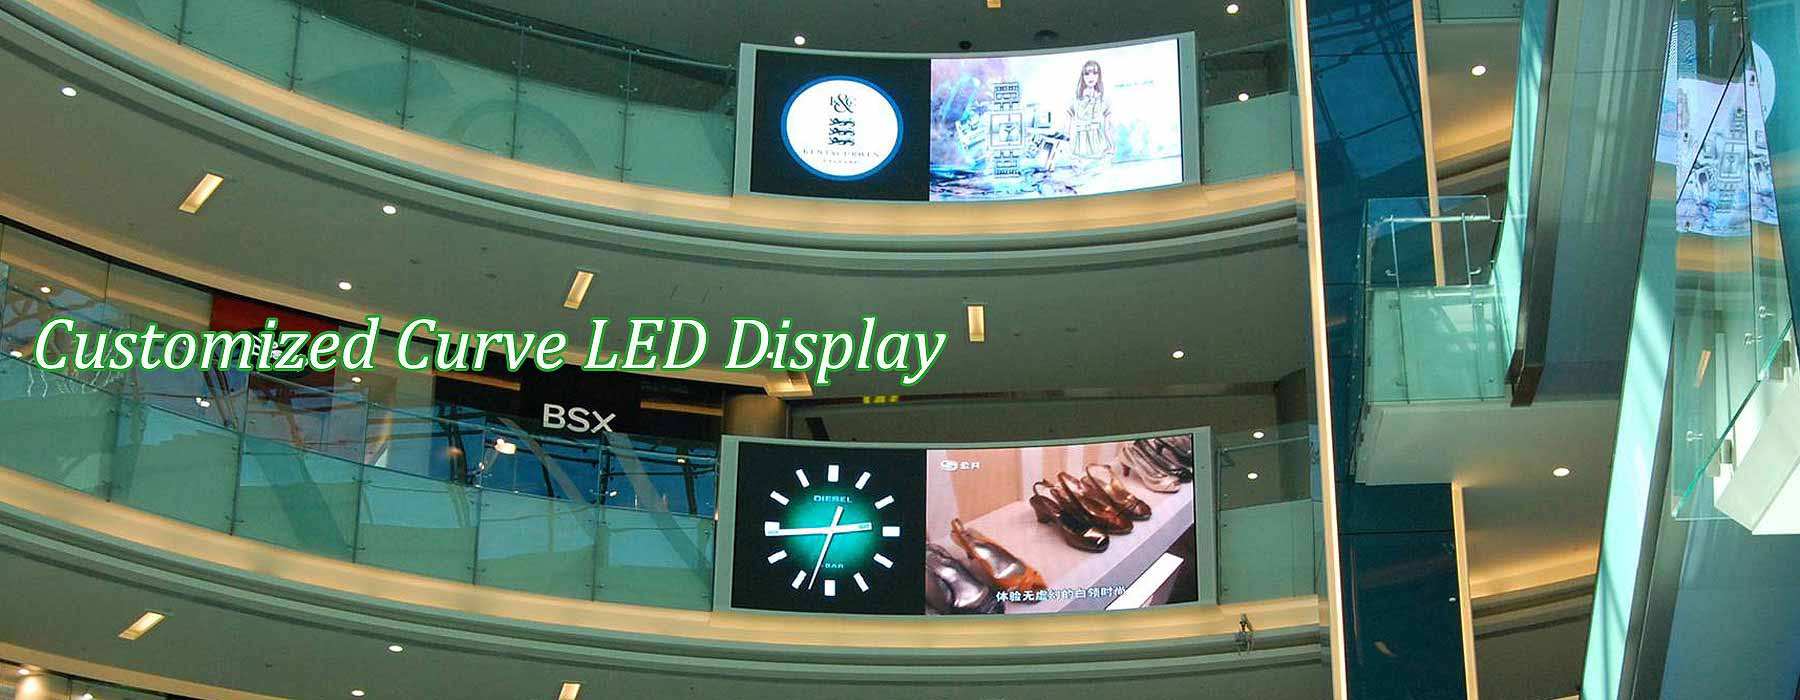 Curve-LED-Display1